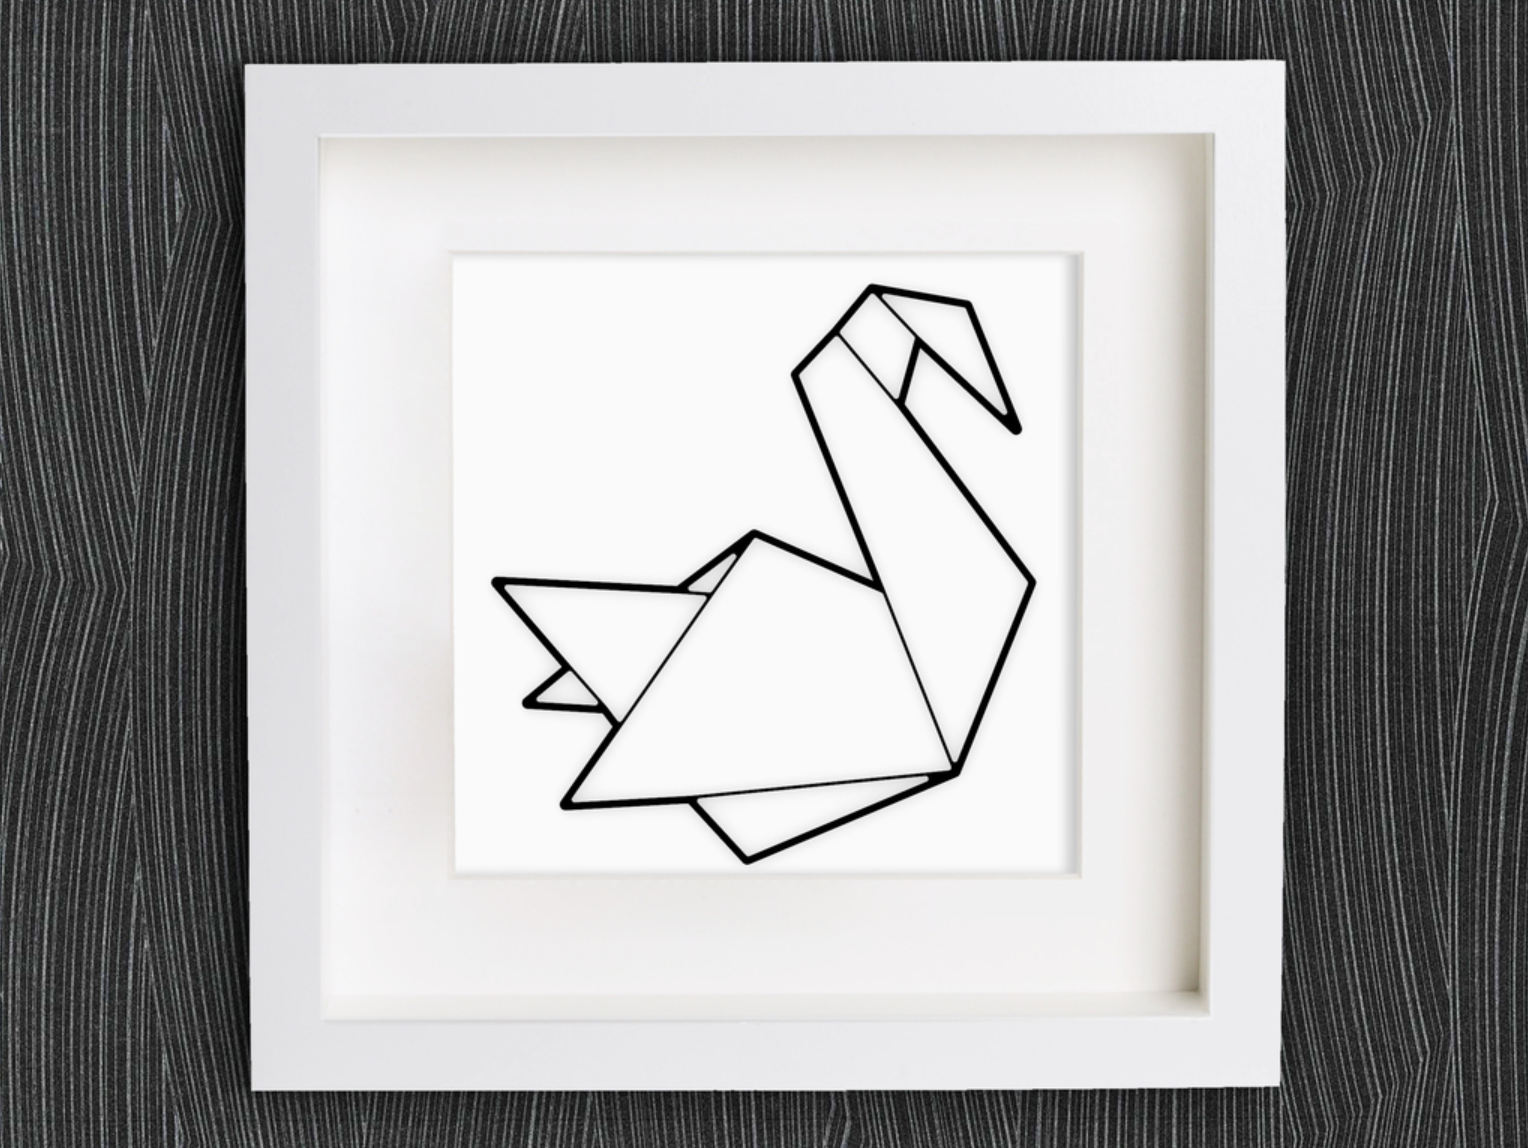 Capture d'écran 2017-11-06 à 11.20.56.png Download free STL file Customizable Origami Swan • 3D printer template, MightyNozzle